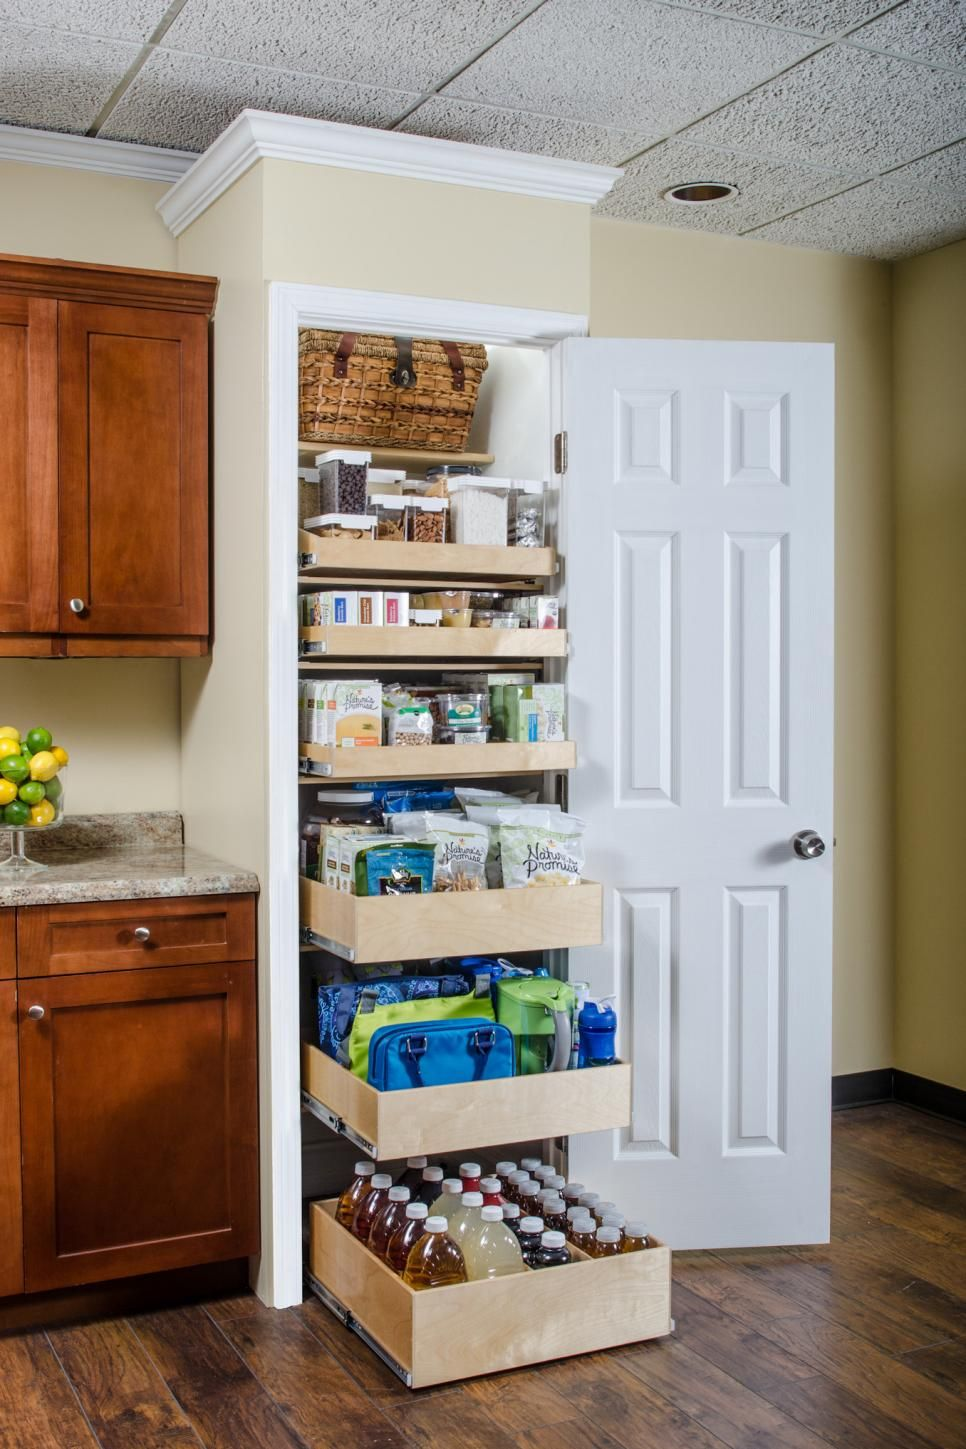 turn your cluttered kitchen pantry or kitchen cabinets into a storage dream with these great pantry organizers